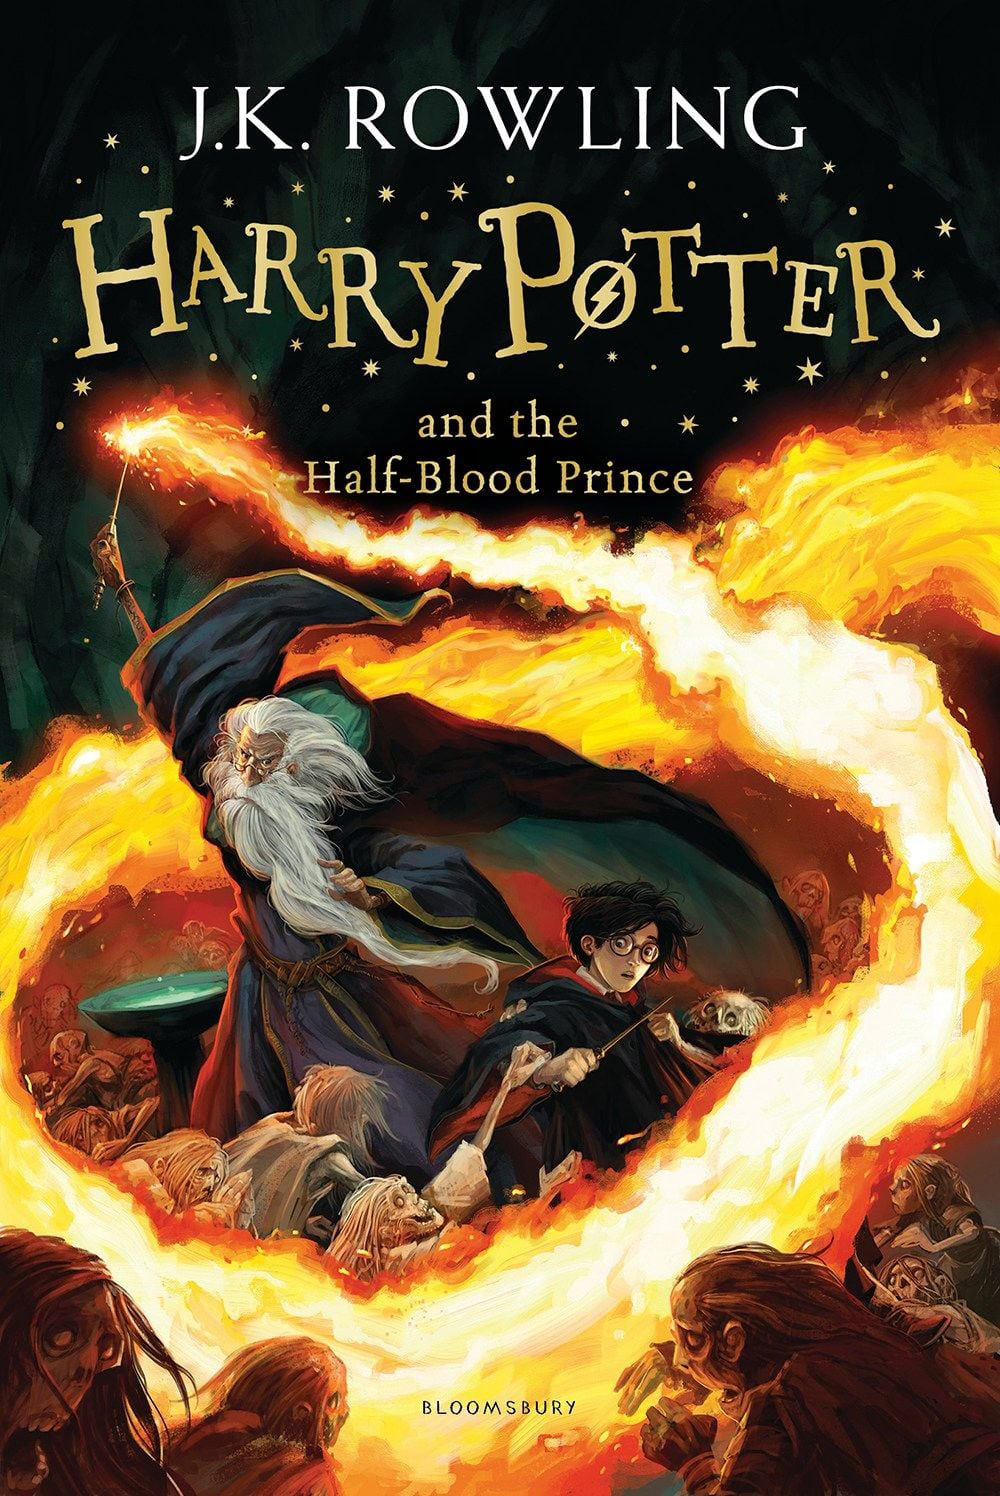 'Half-Blood Prince' UK children's edition (2014)